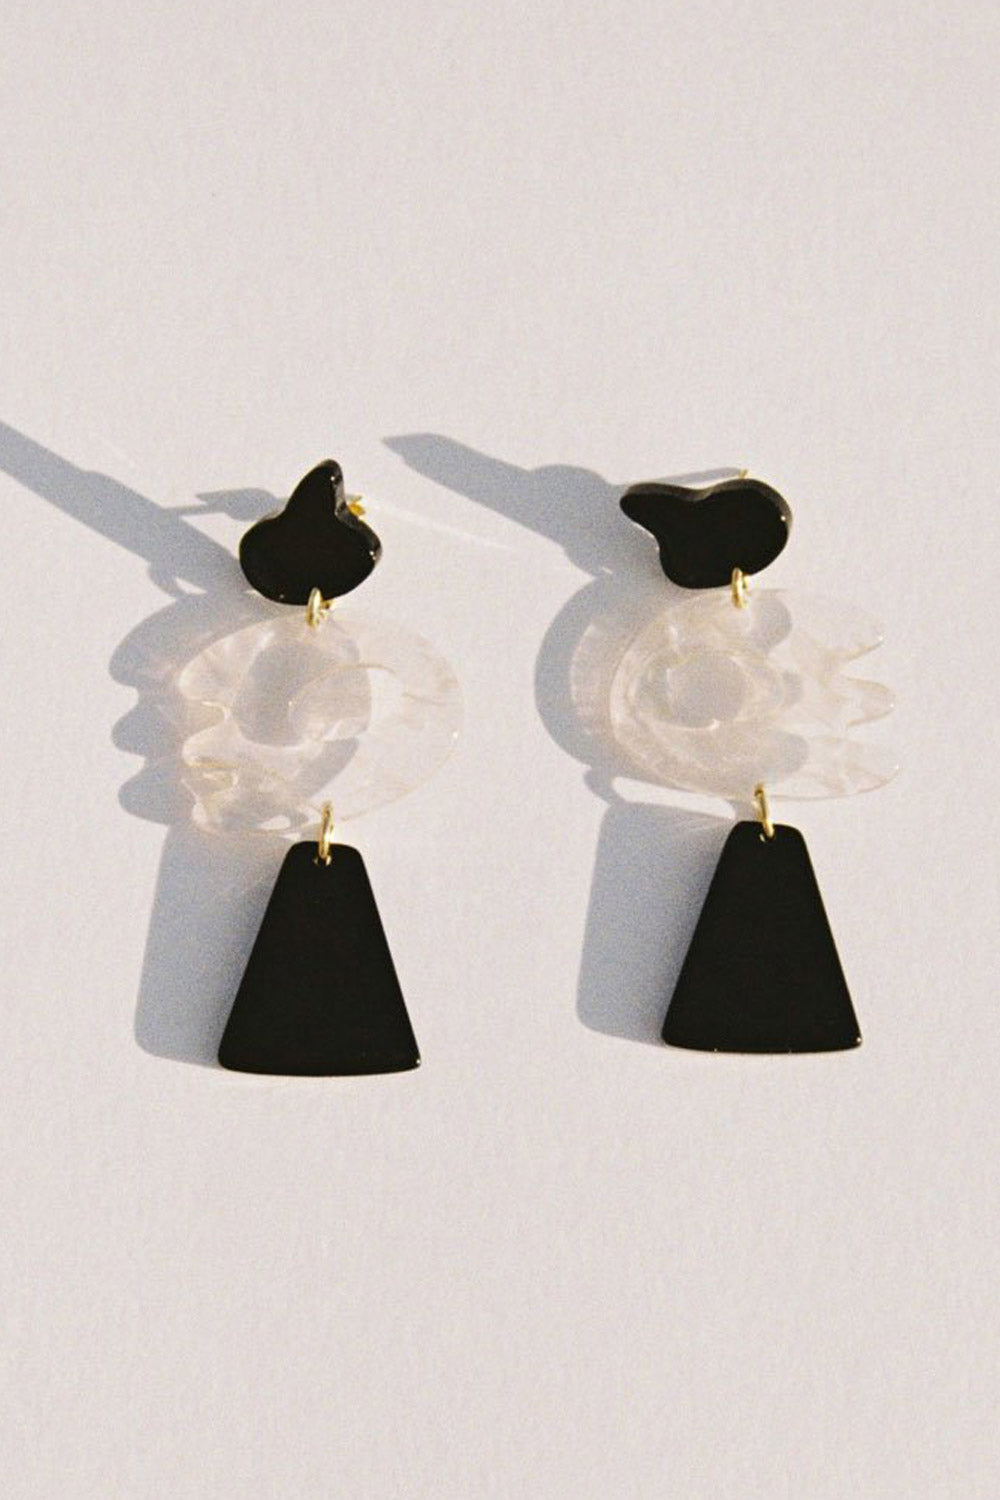 Rio Earrings in Black